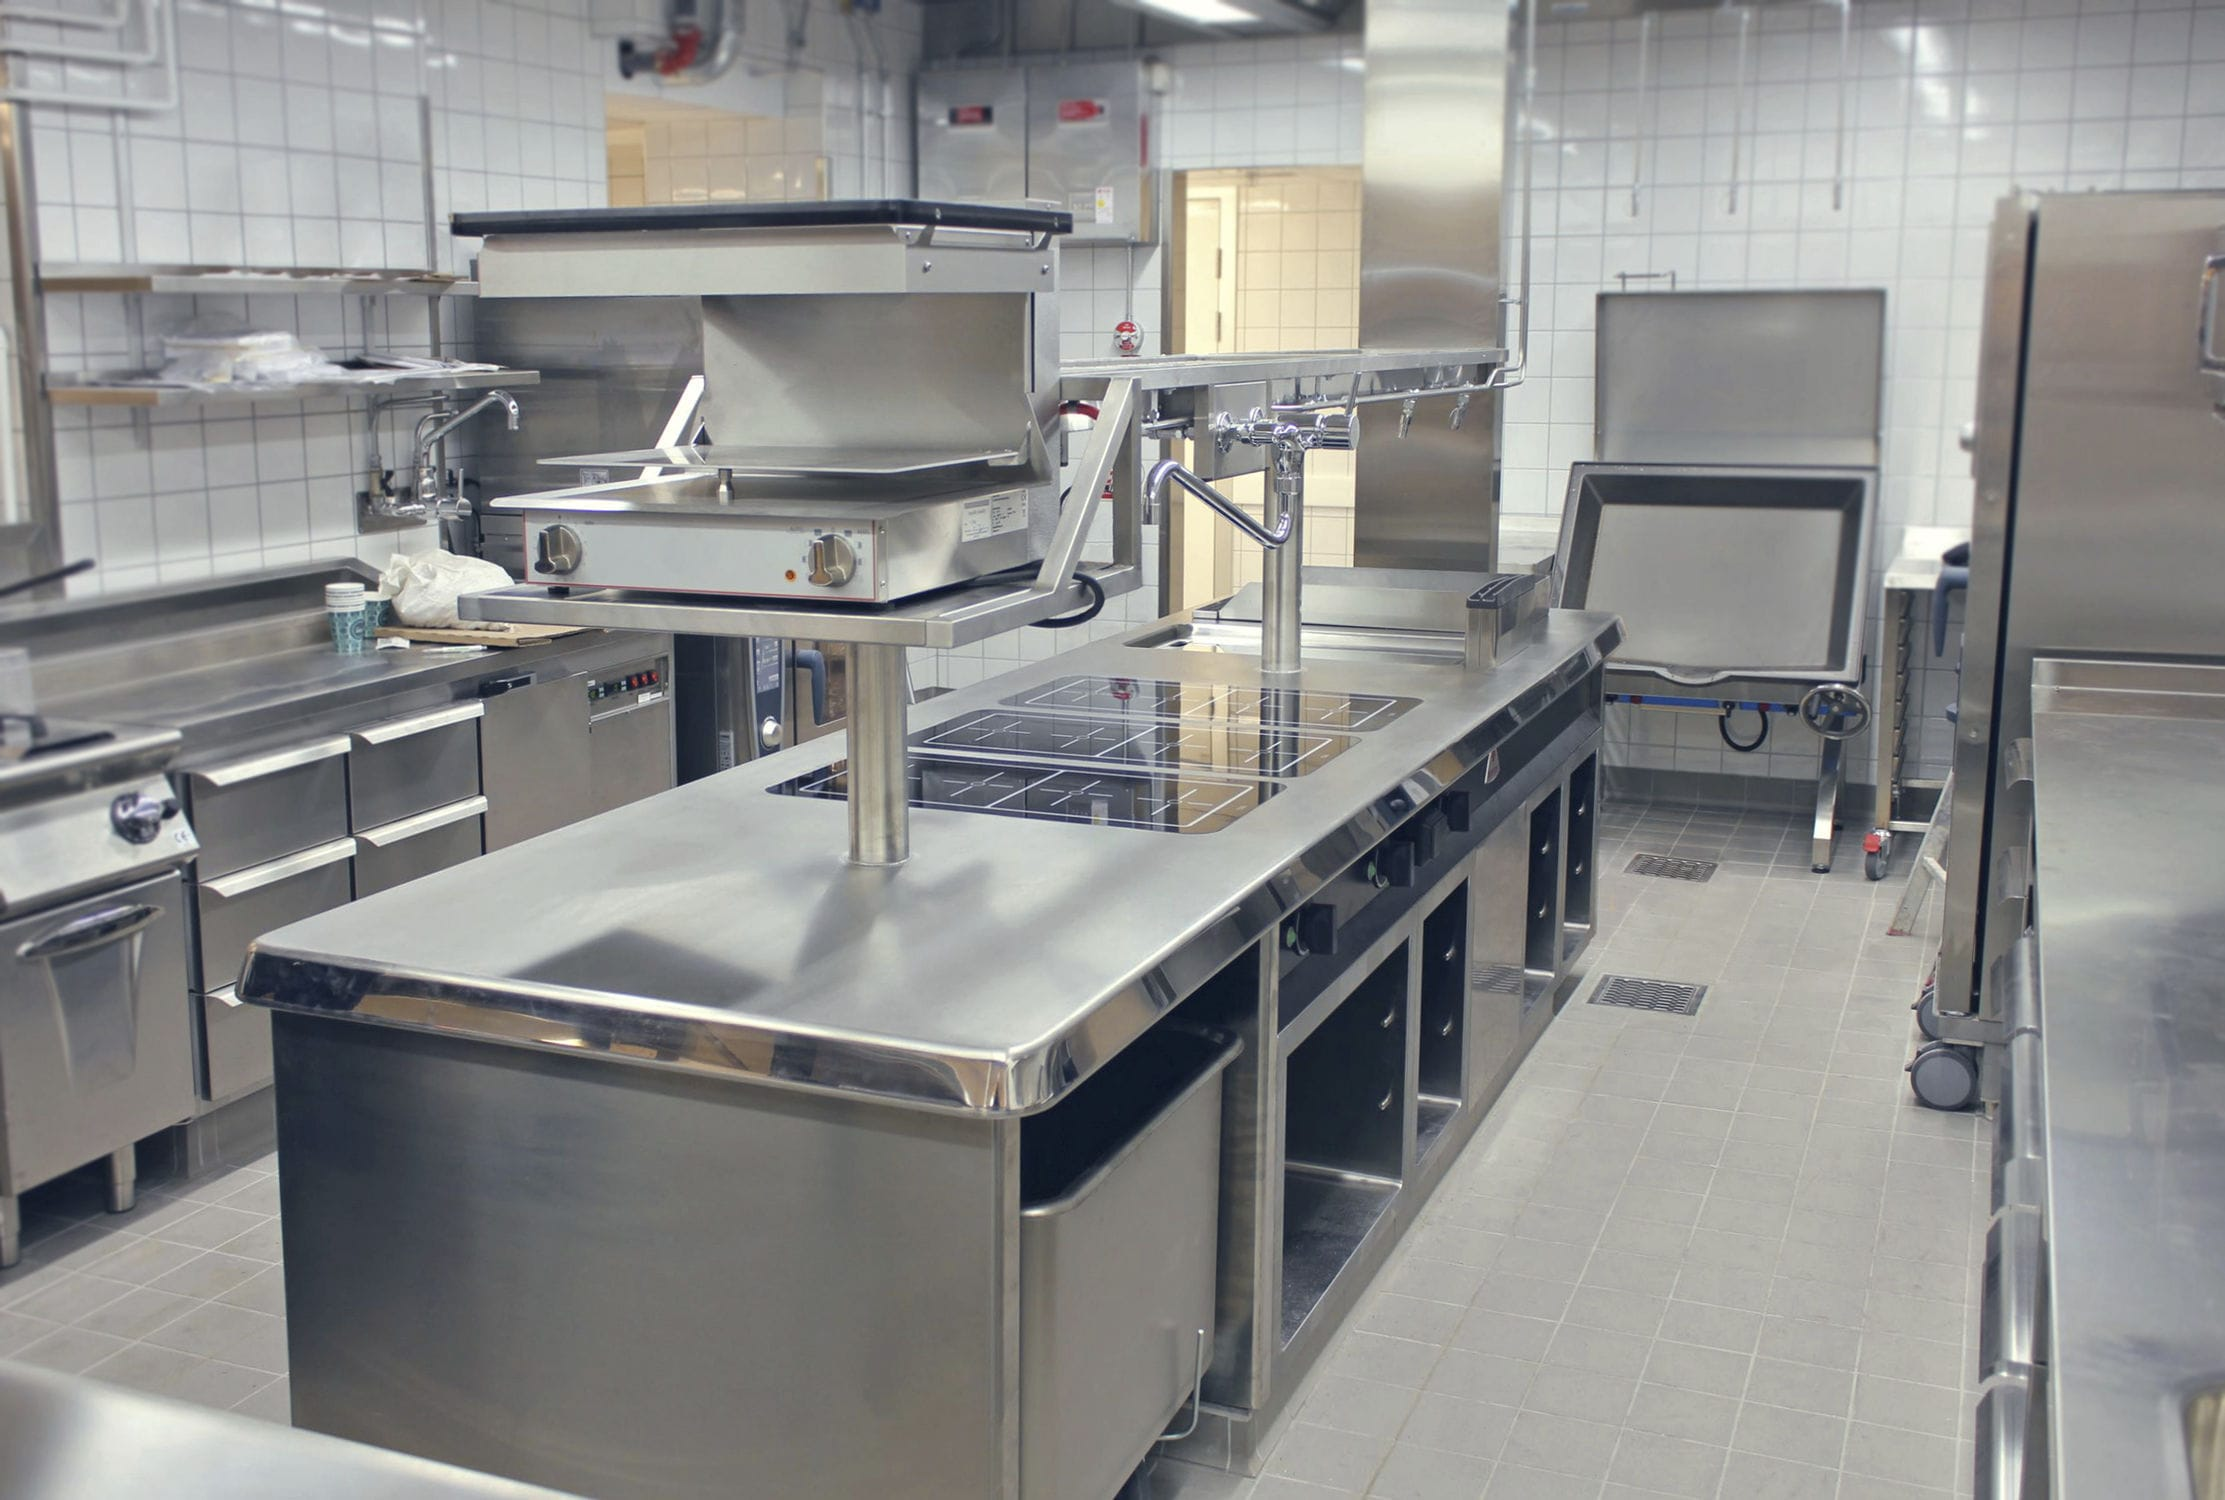 Why Is Stainless Steel Important In Commercial Kitchens